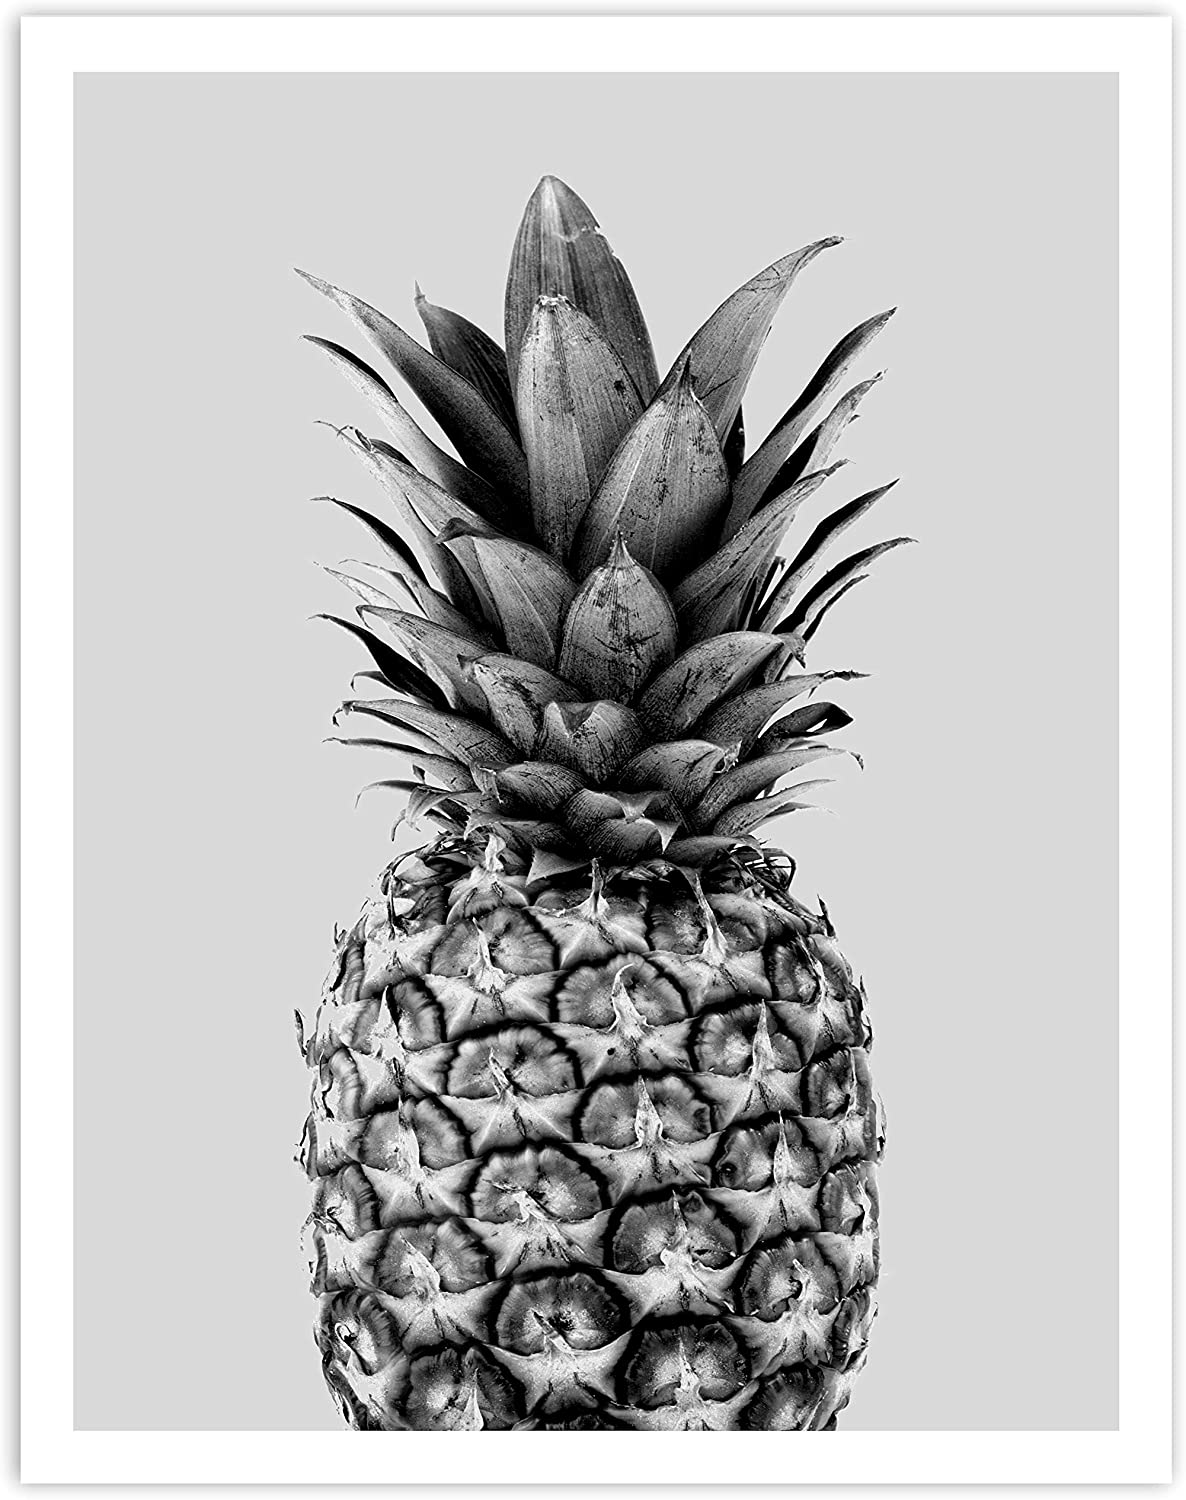 Printsmo, Black and White Pineapple, Tropical Fruit, Minimalist Modern Art Print Poster, Contemporary Wall Art for Home Decor 11x14 inches, Unframed